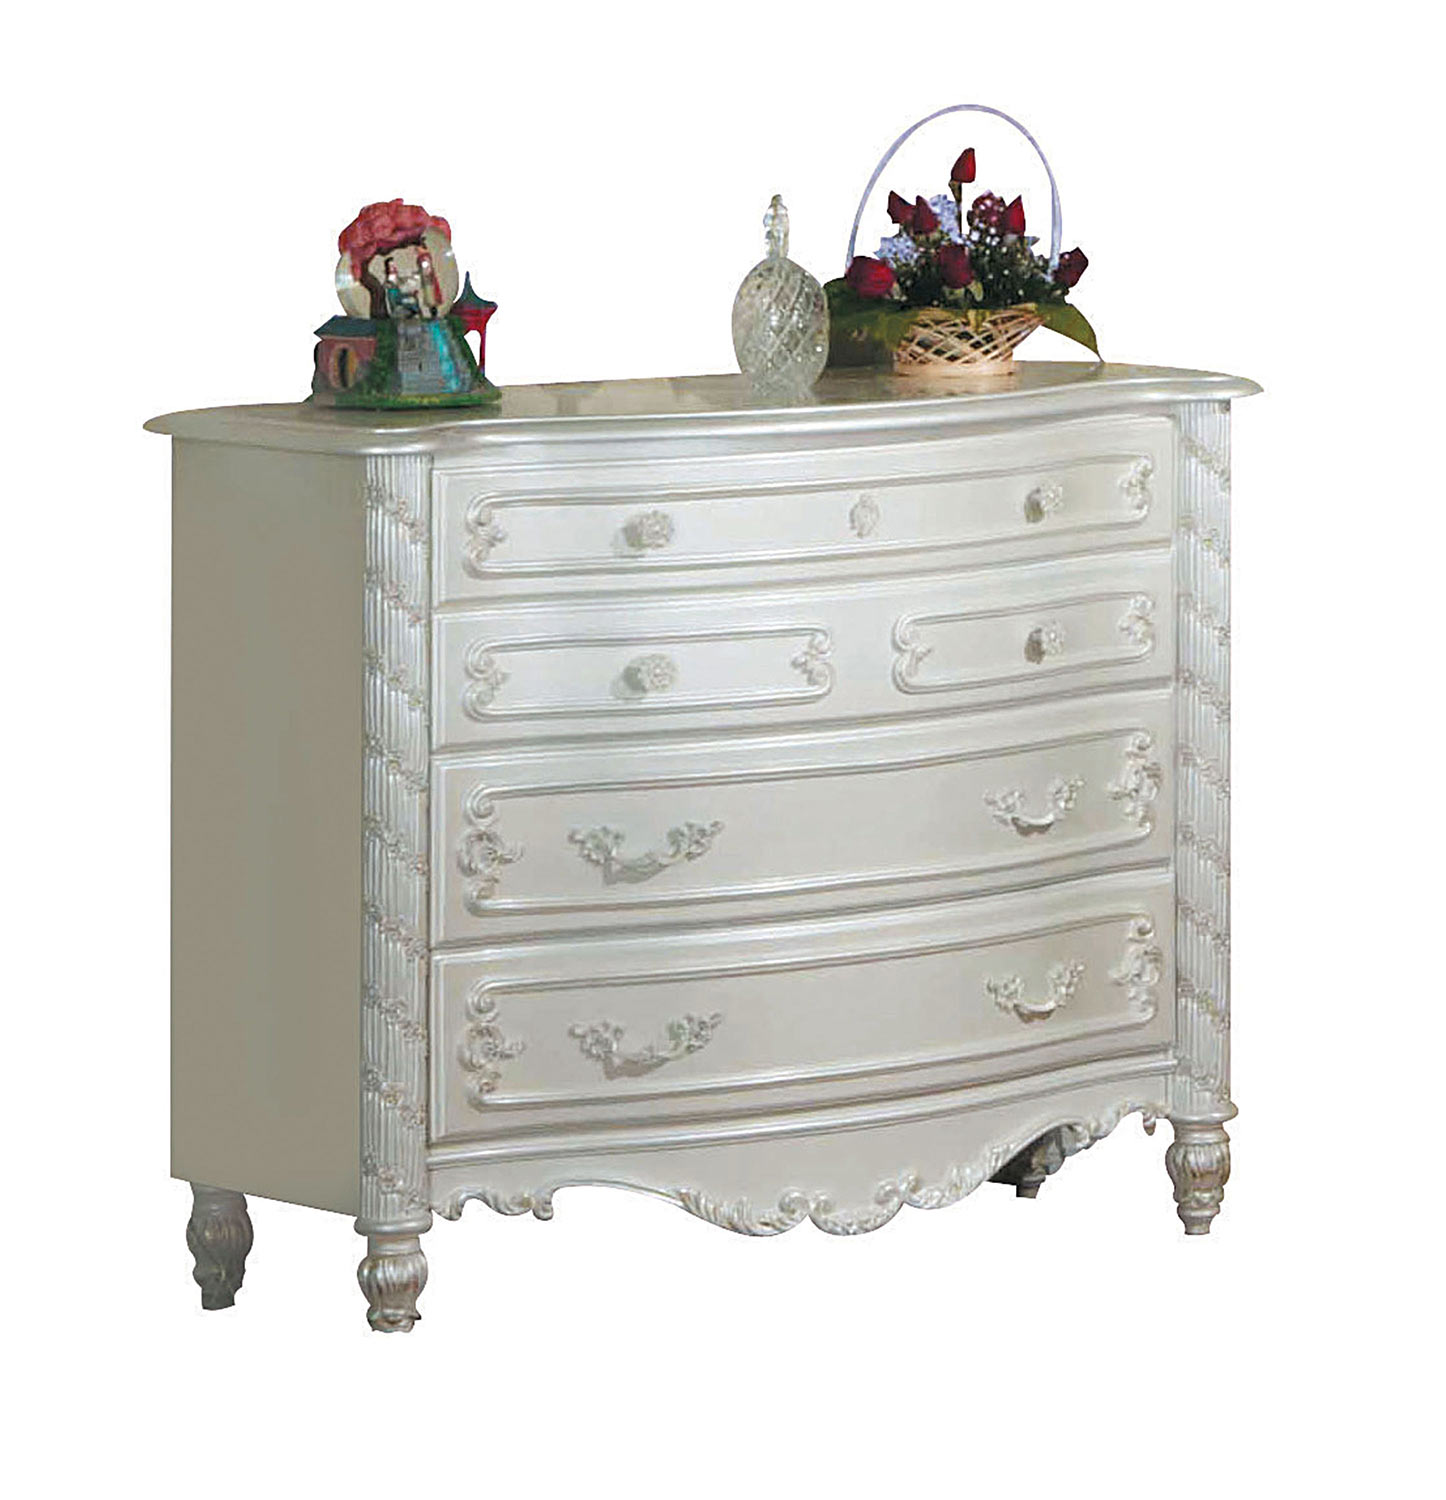 Acme Pearl Dresser - Pearl White/Gold Brush Accent